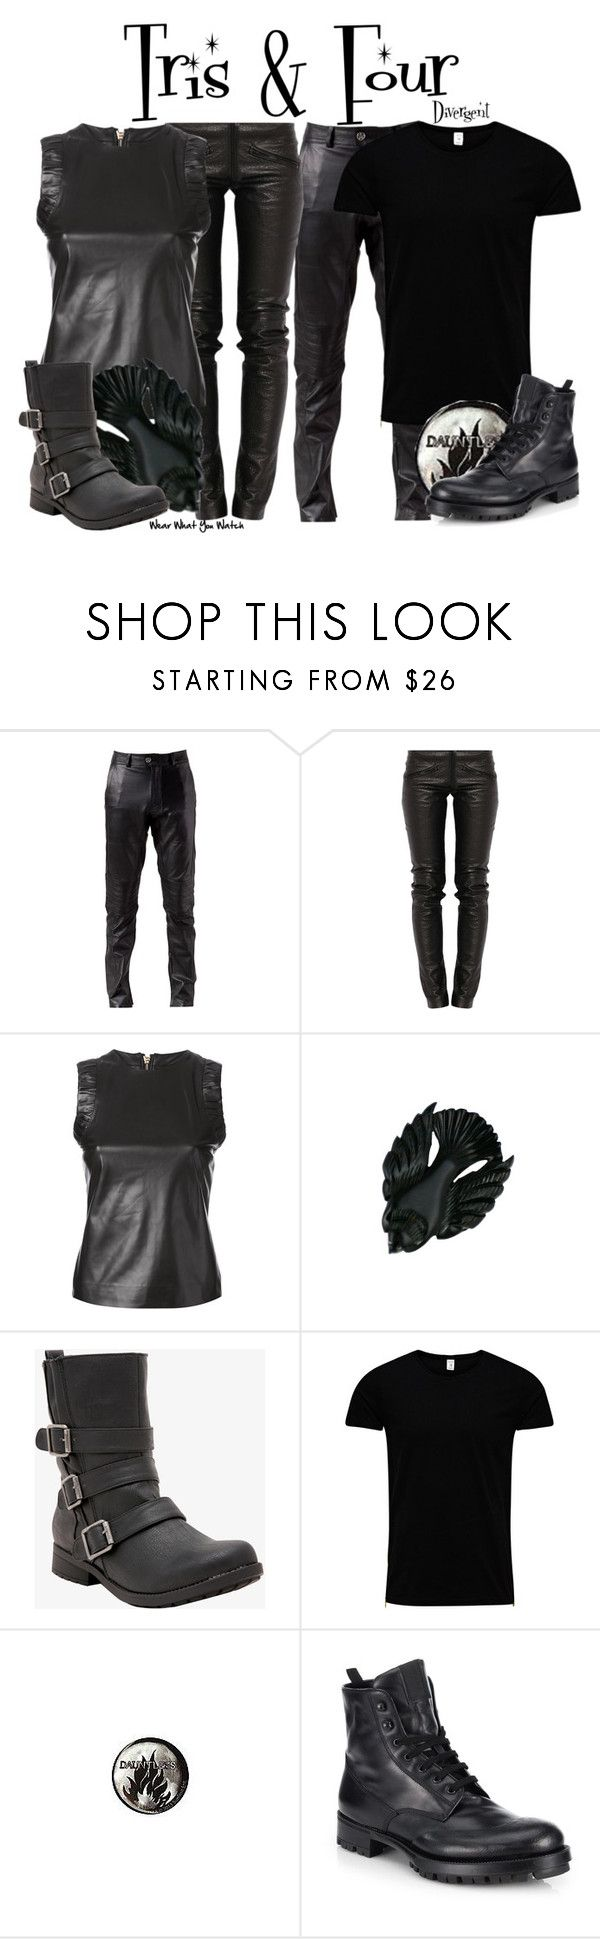 """""""Divergent"""" by wearwhatyouwatch ❤ liked on Polyvore featuring Built for Man, Preen, Dsquared2, Jack & Jones, Hot Topic, Prada, wearwhatyouwatch and film"""